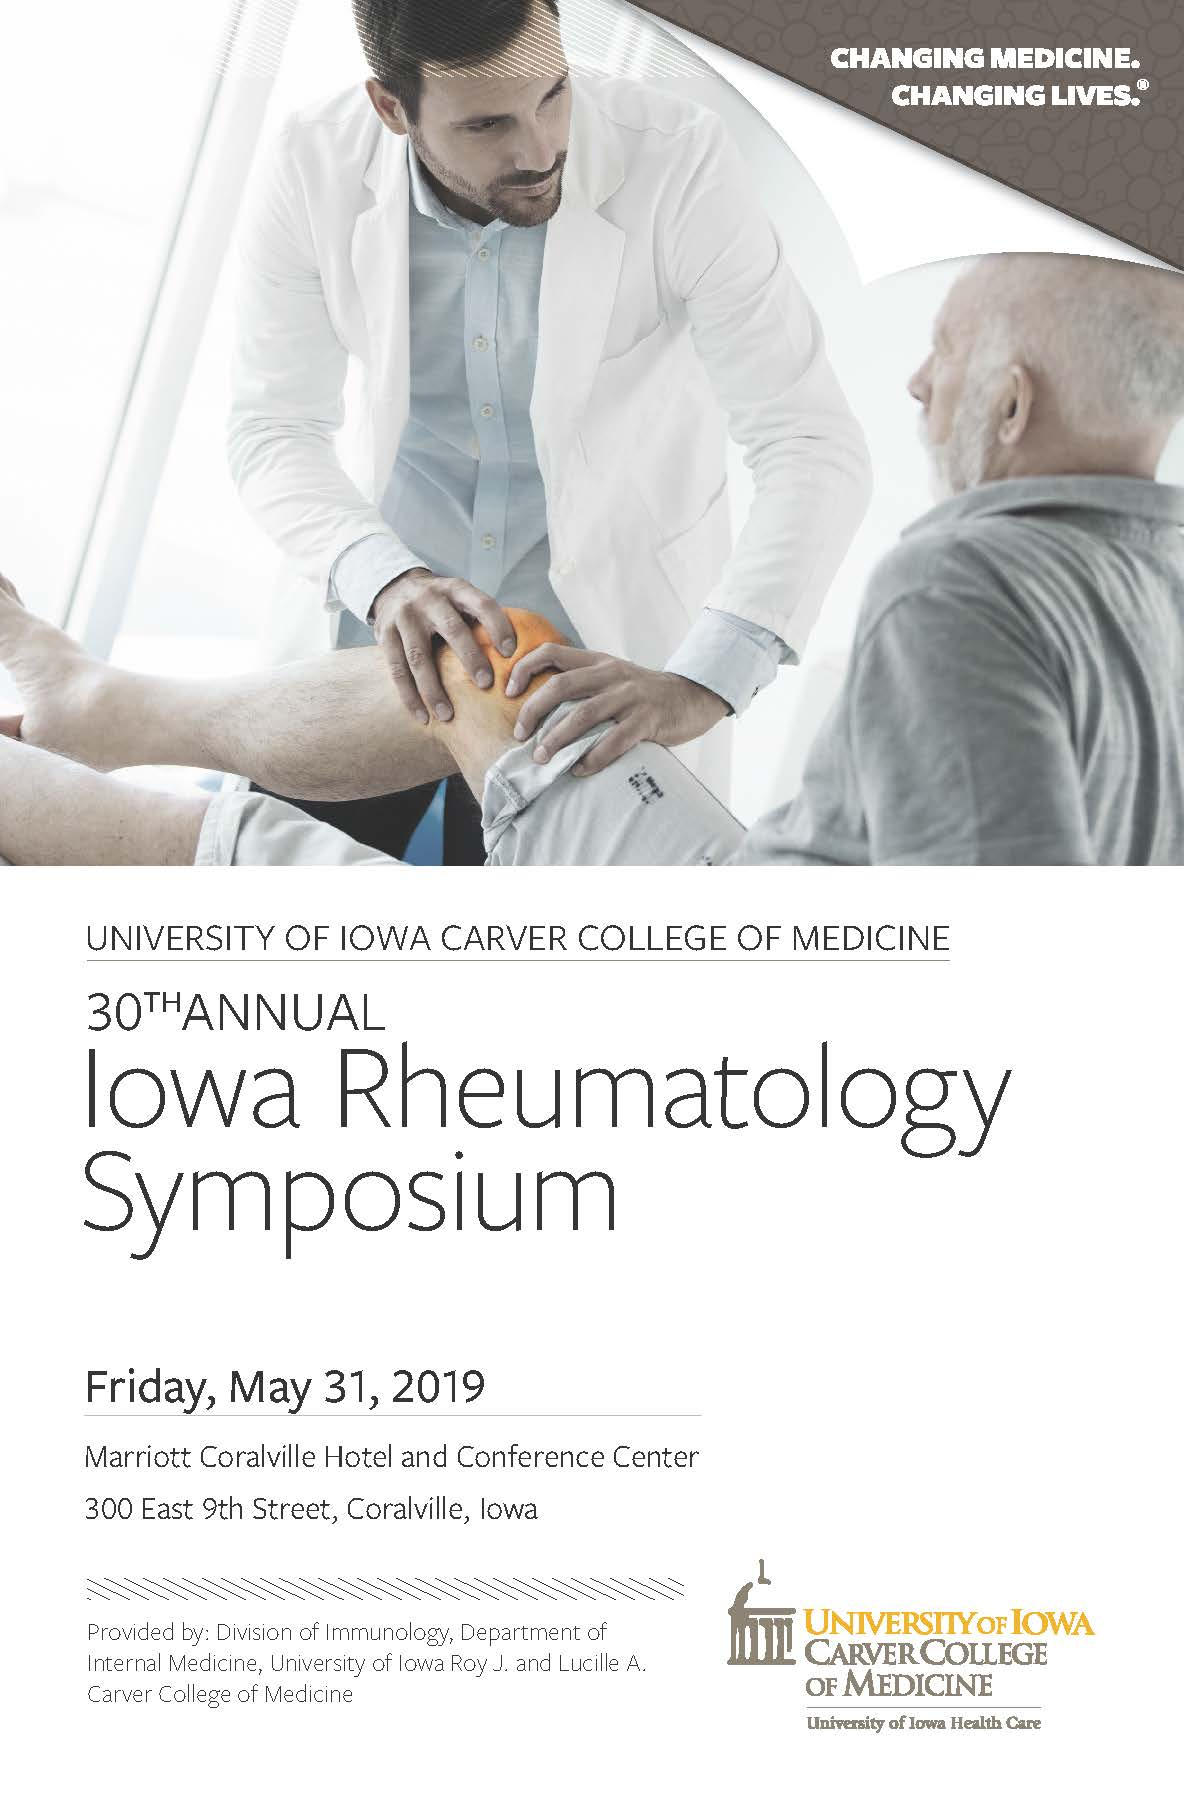 Iowa Rheumatology Symposium 2019 Banner